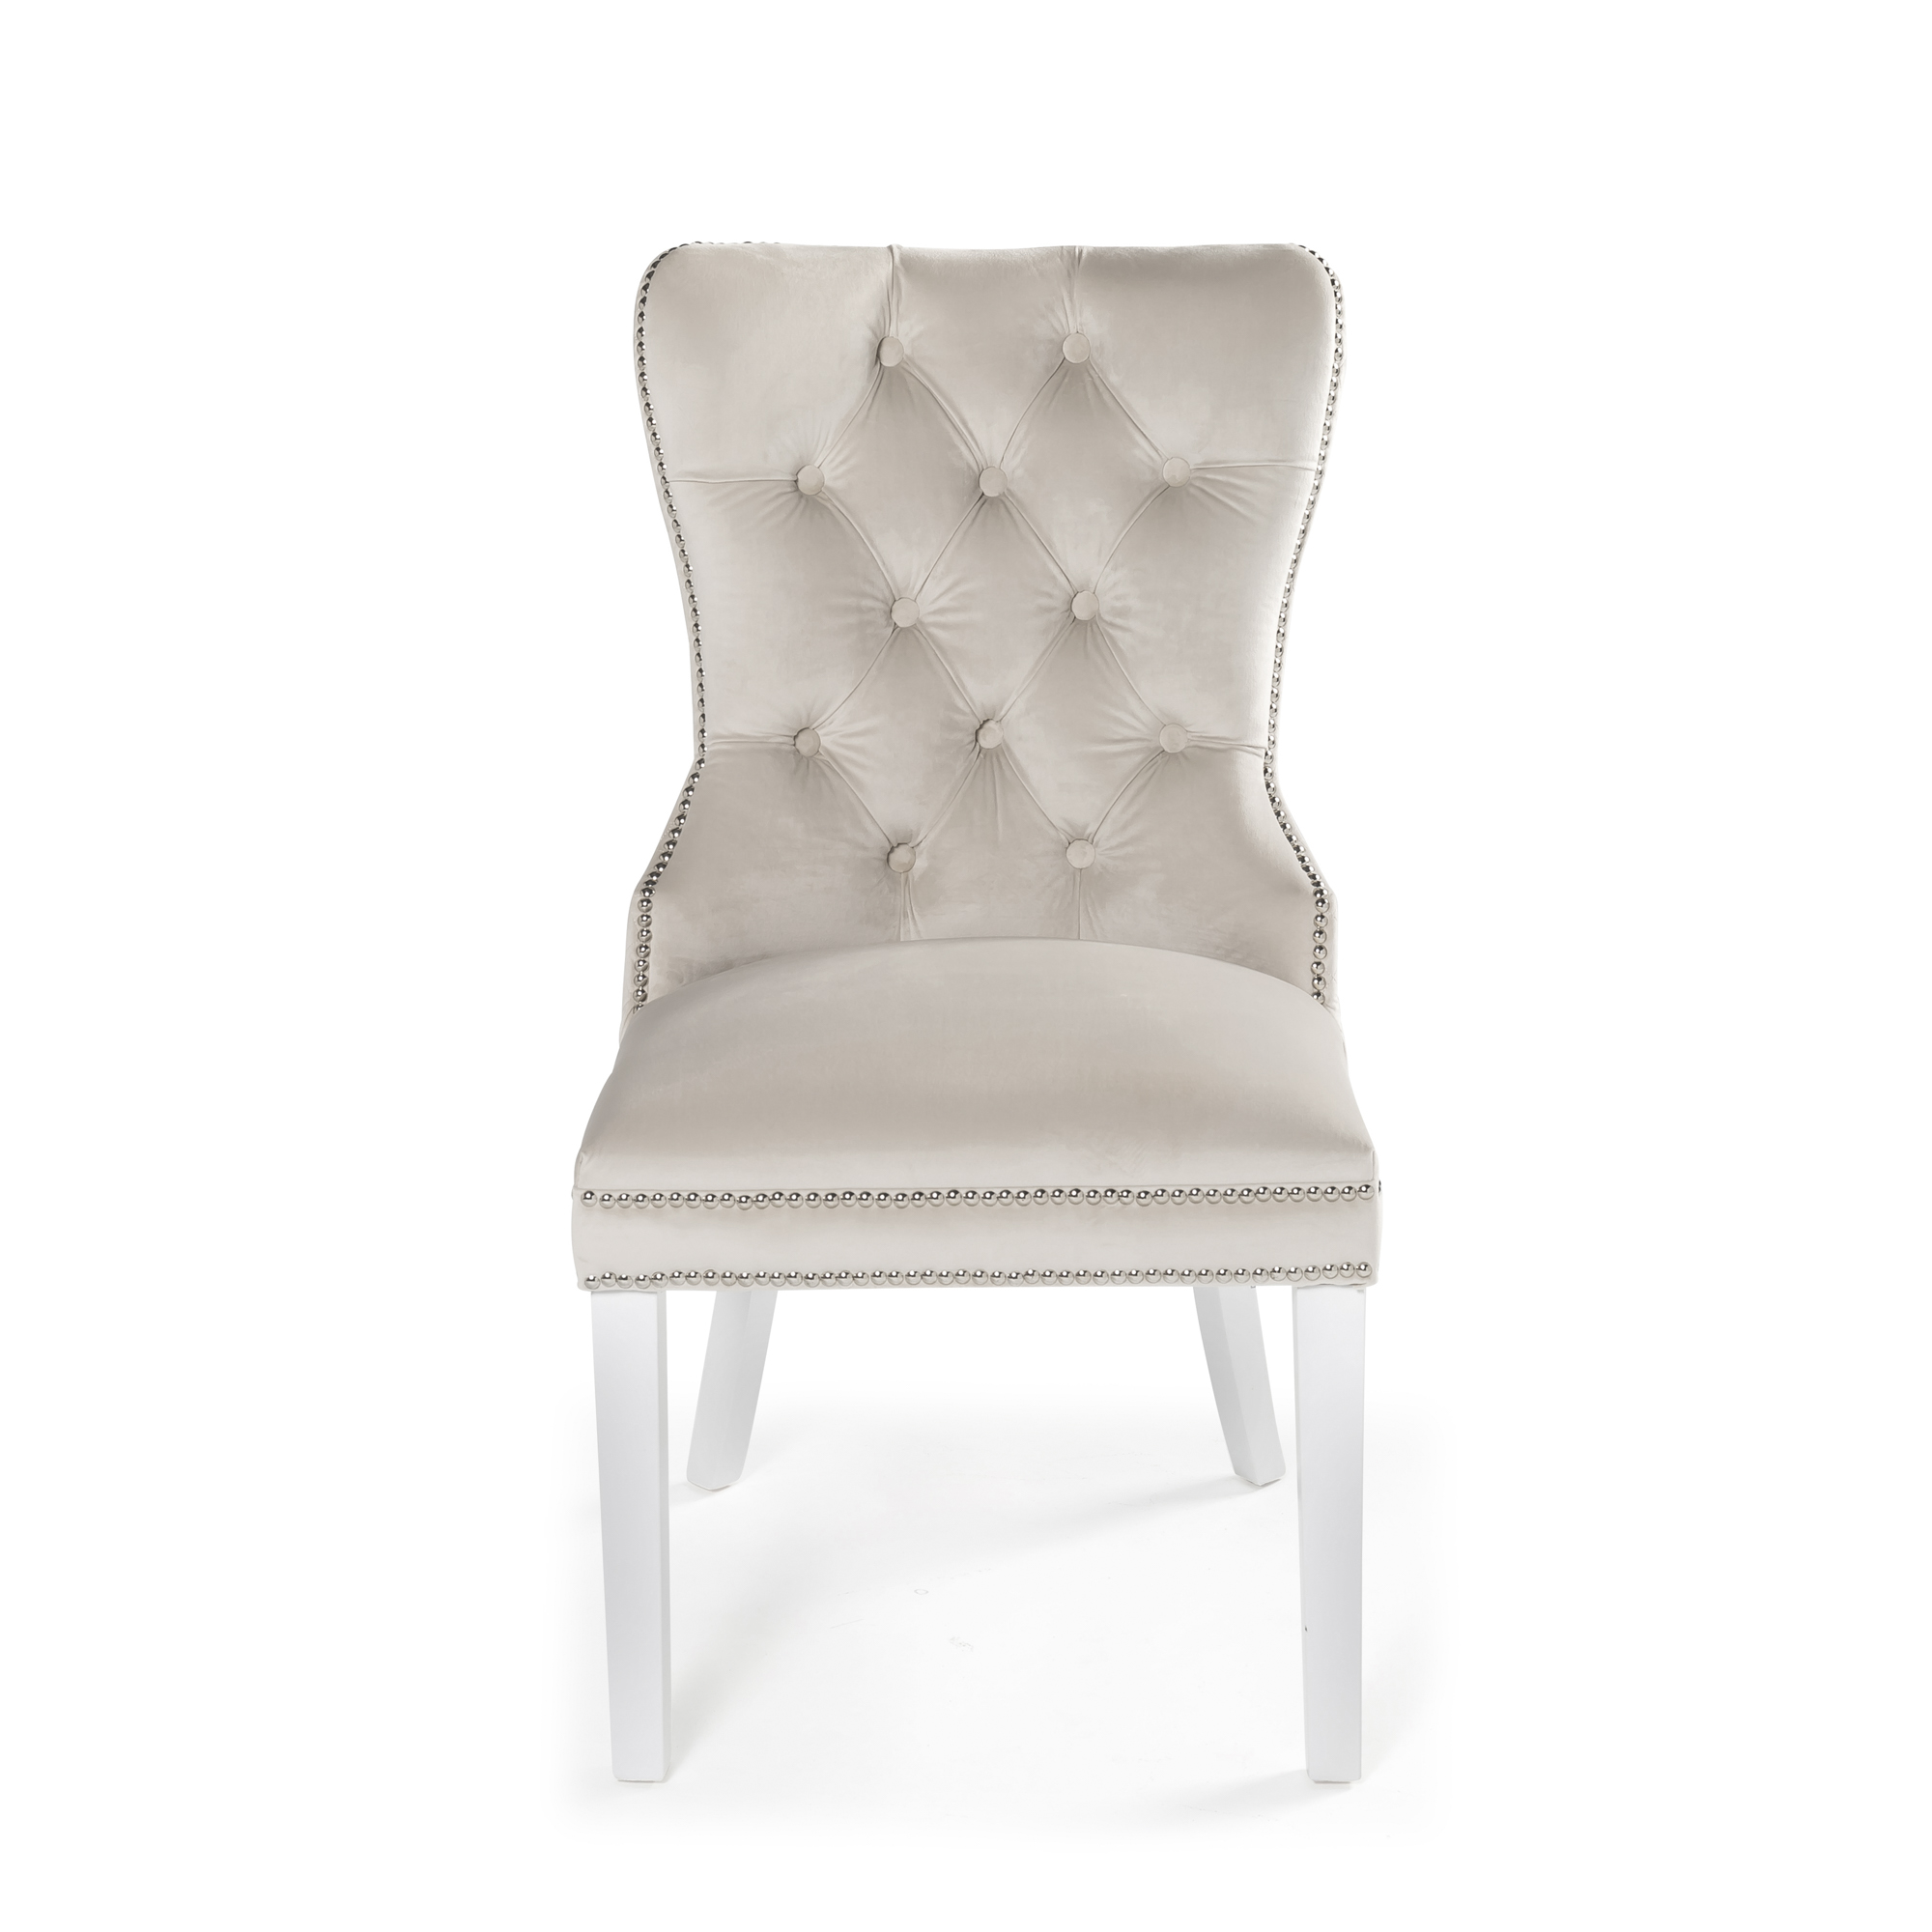 Hale Cream Quilted Brushed Velvet Studded Hoop Dining Chair with White Painted Legs